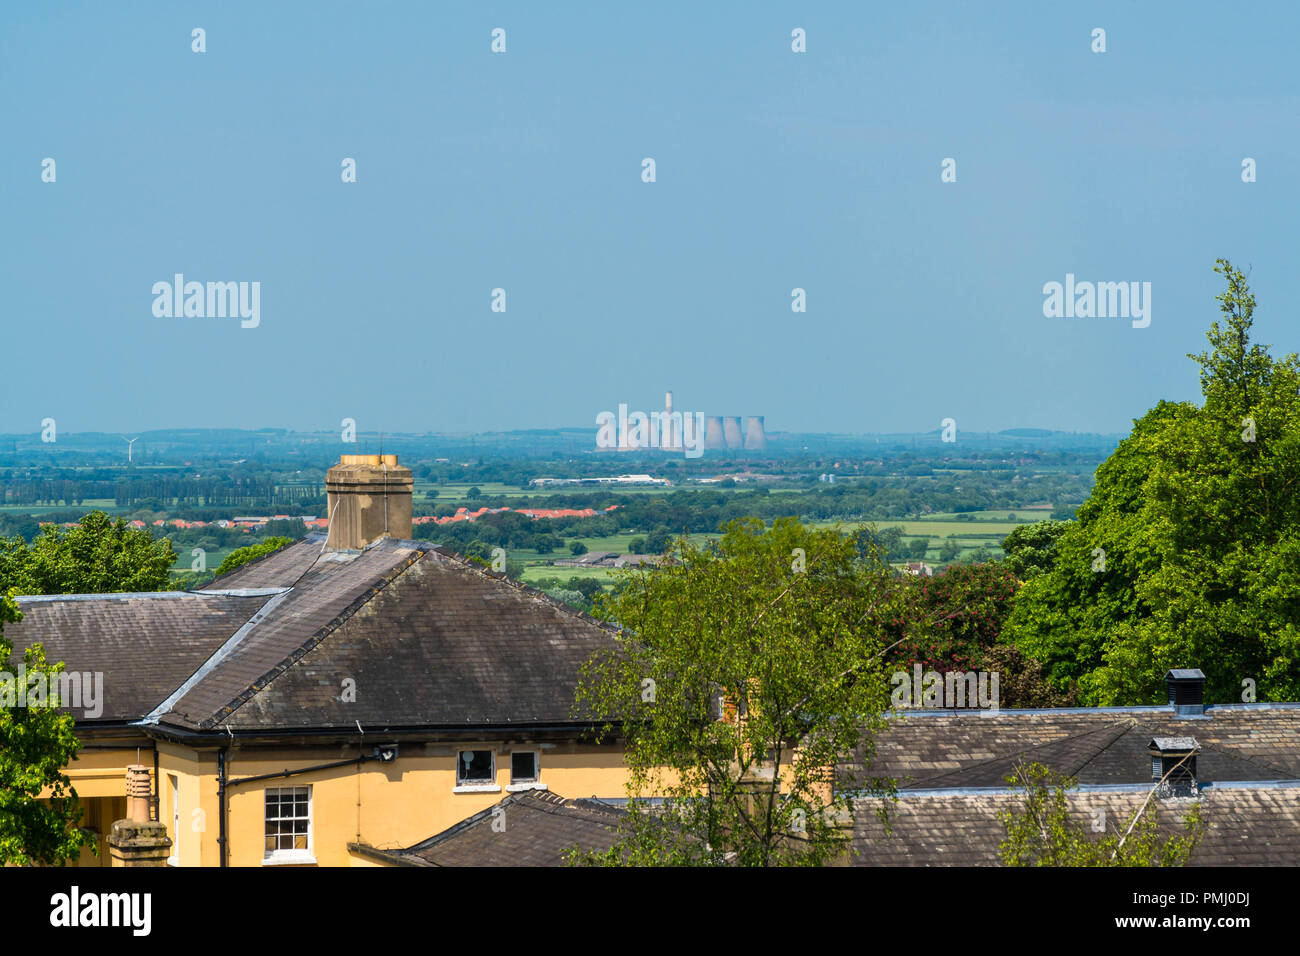 Cottam Power Station as seen from the castle wall, Lincoln Lincolnshire UK May 2018. - Stock Image